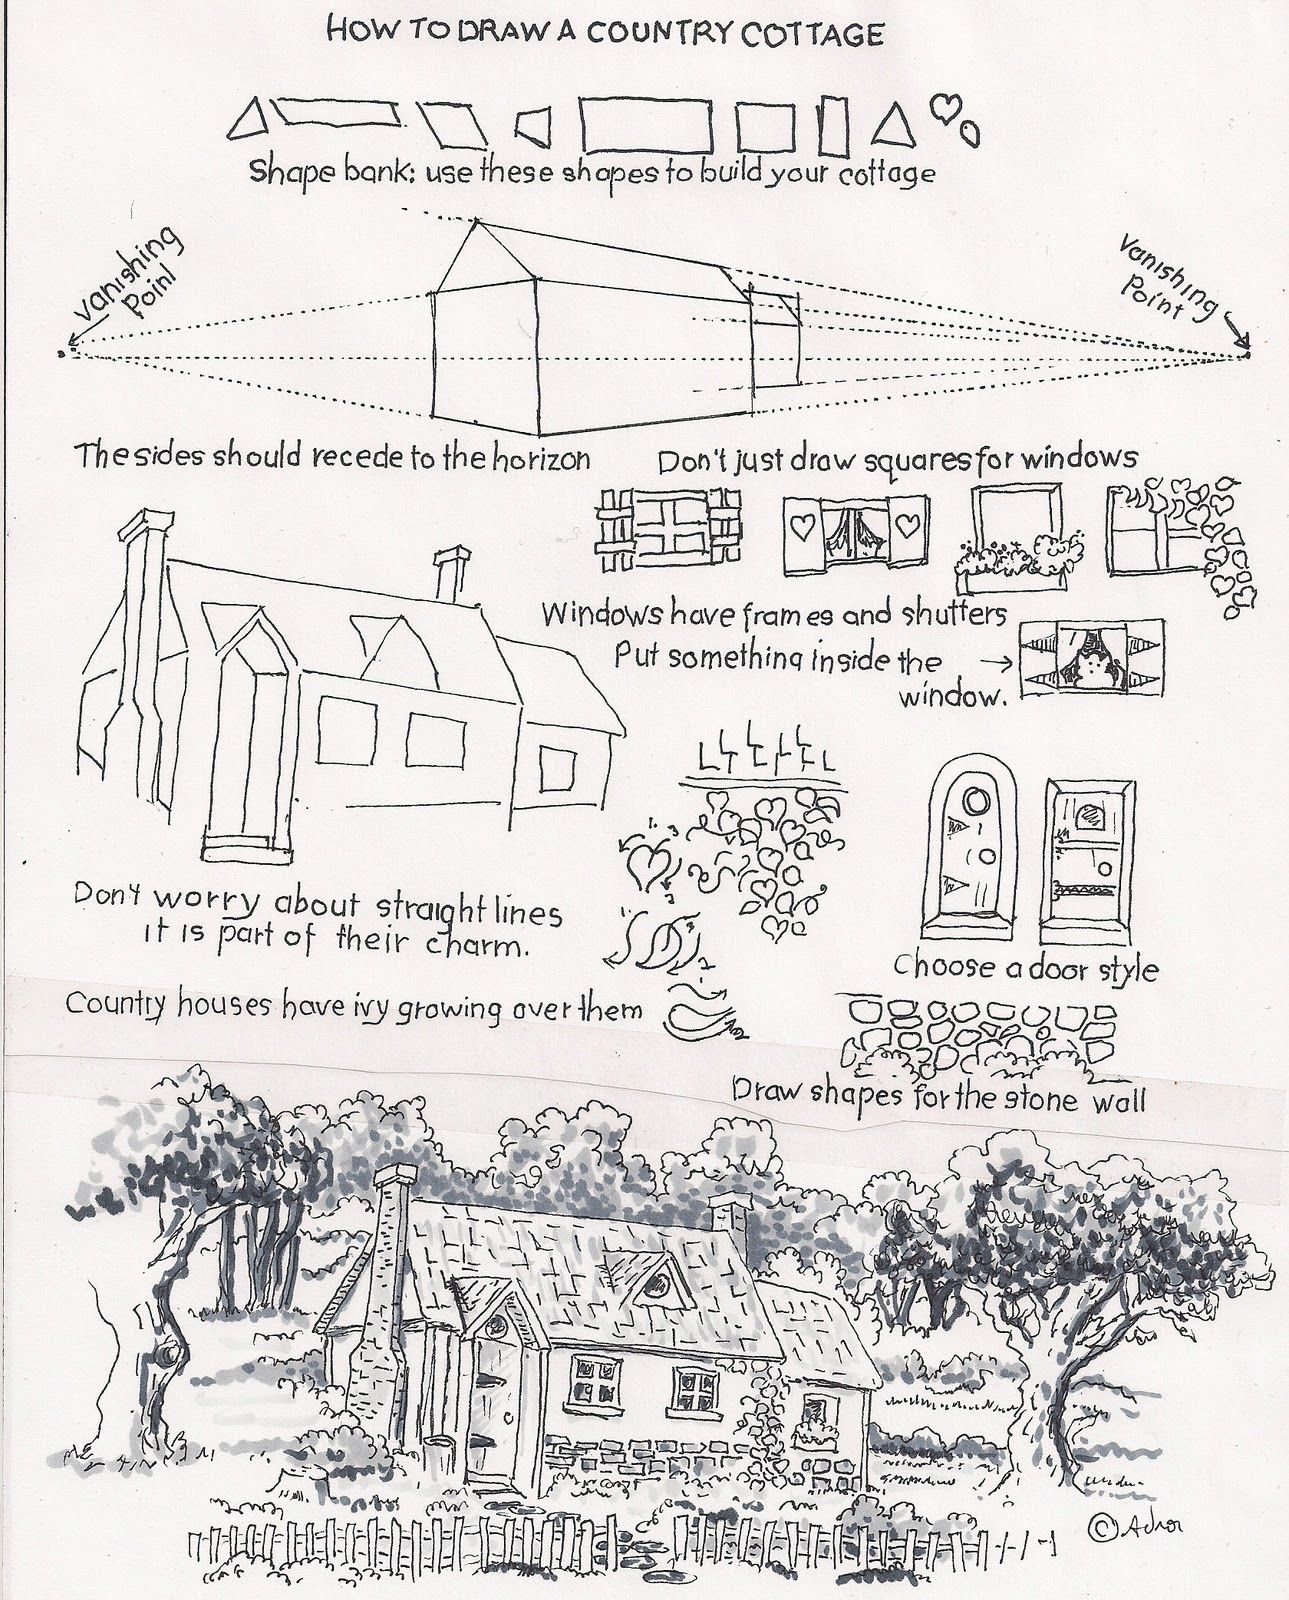 How To Draw A Country Cottage